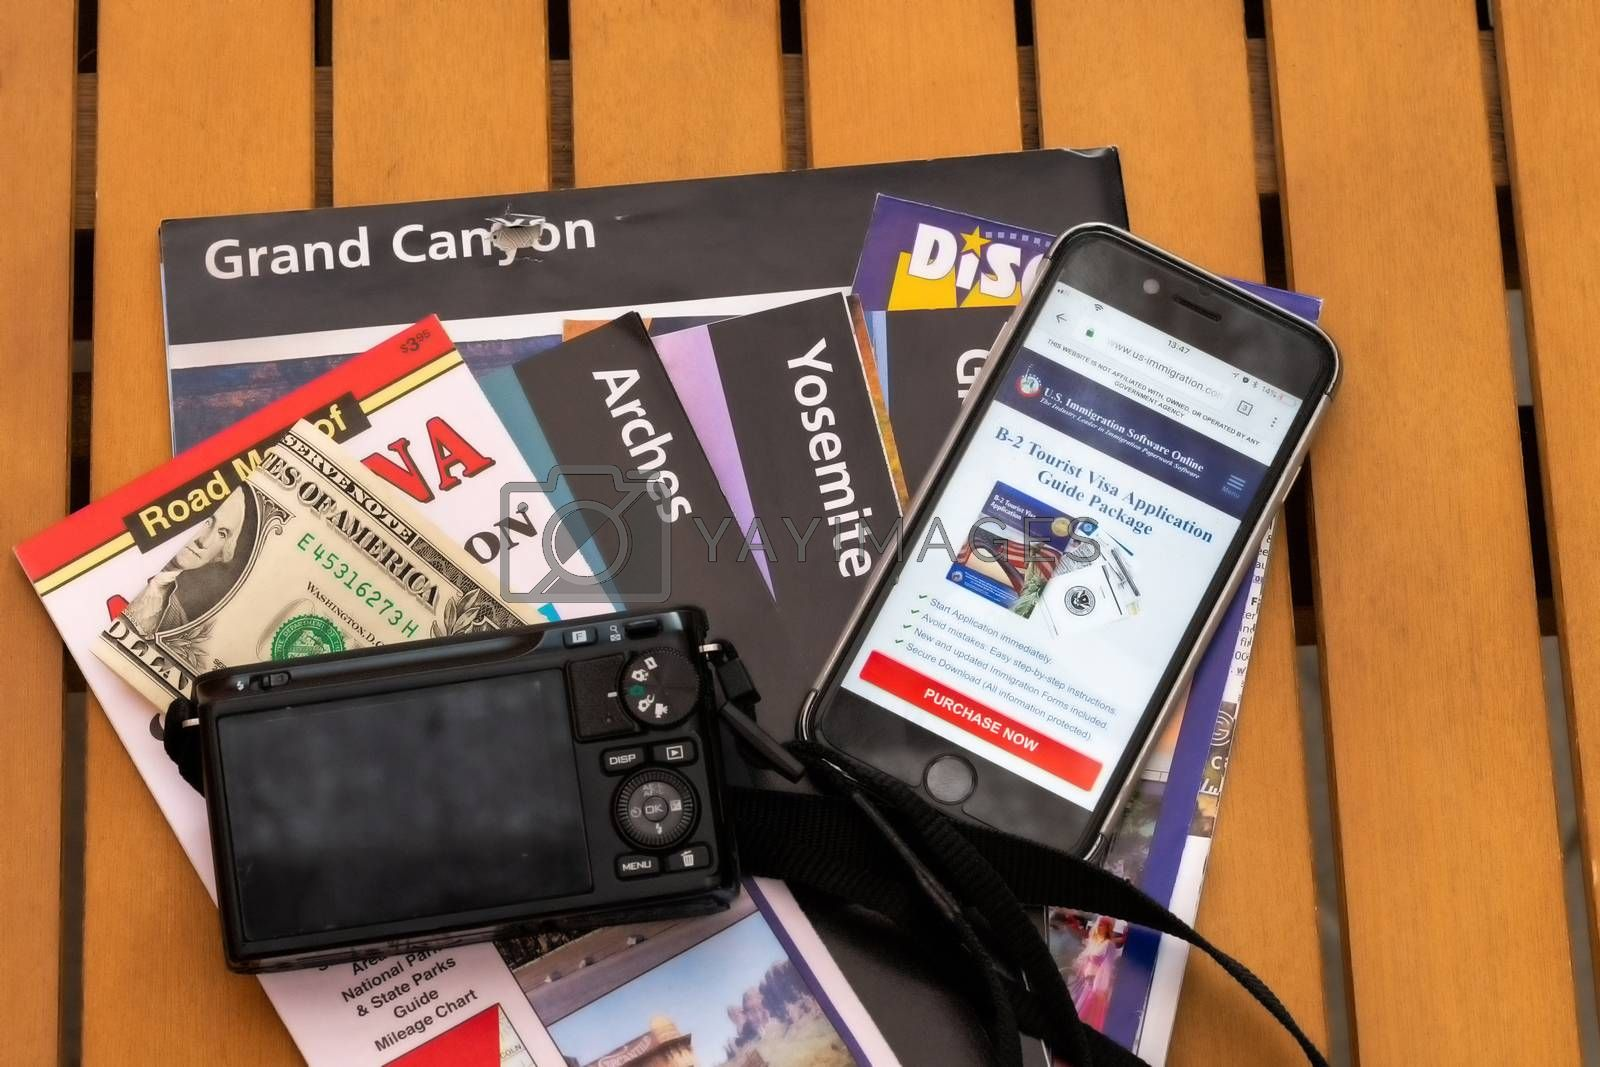 Travel planning accessories, camera, smart phone and travel maps, various USA maps, travel preparation and planning concept to Lake Powell area, mobile phone displaying Visa application